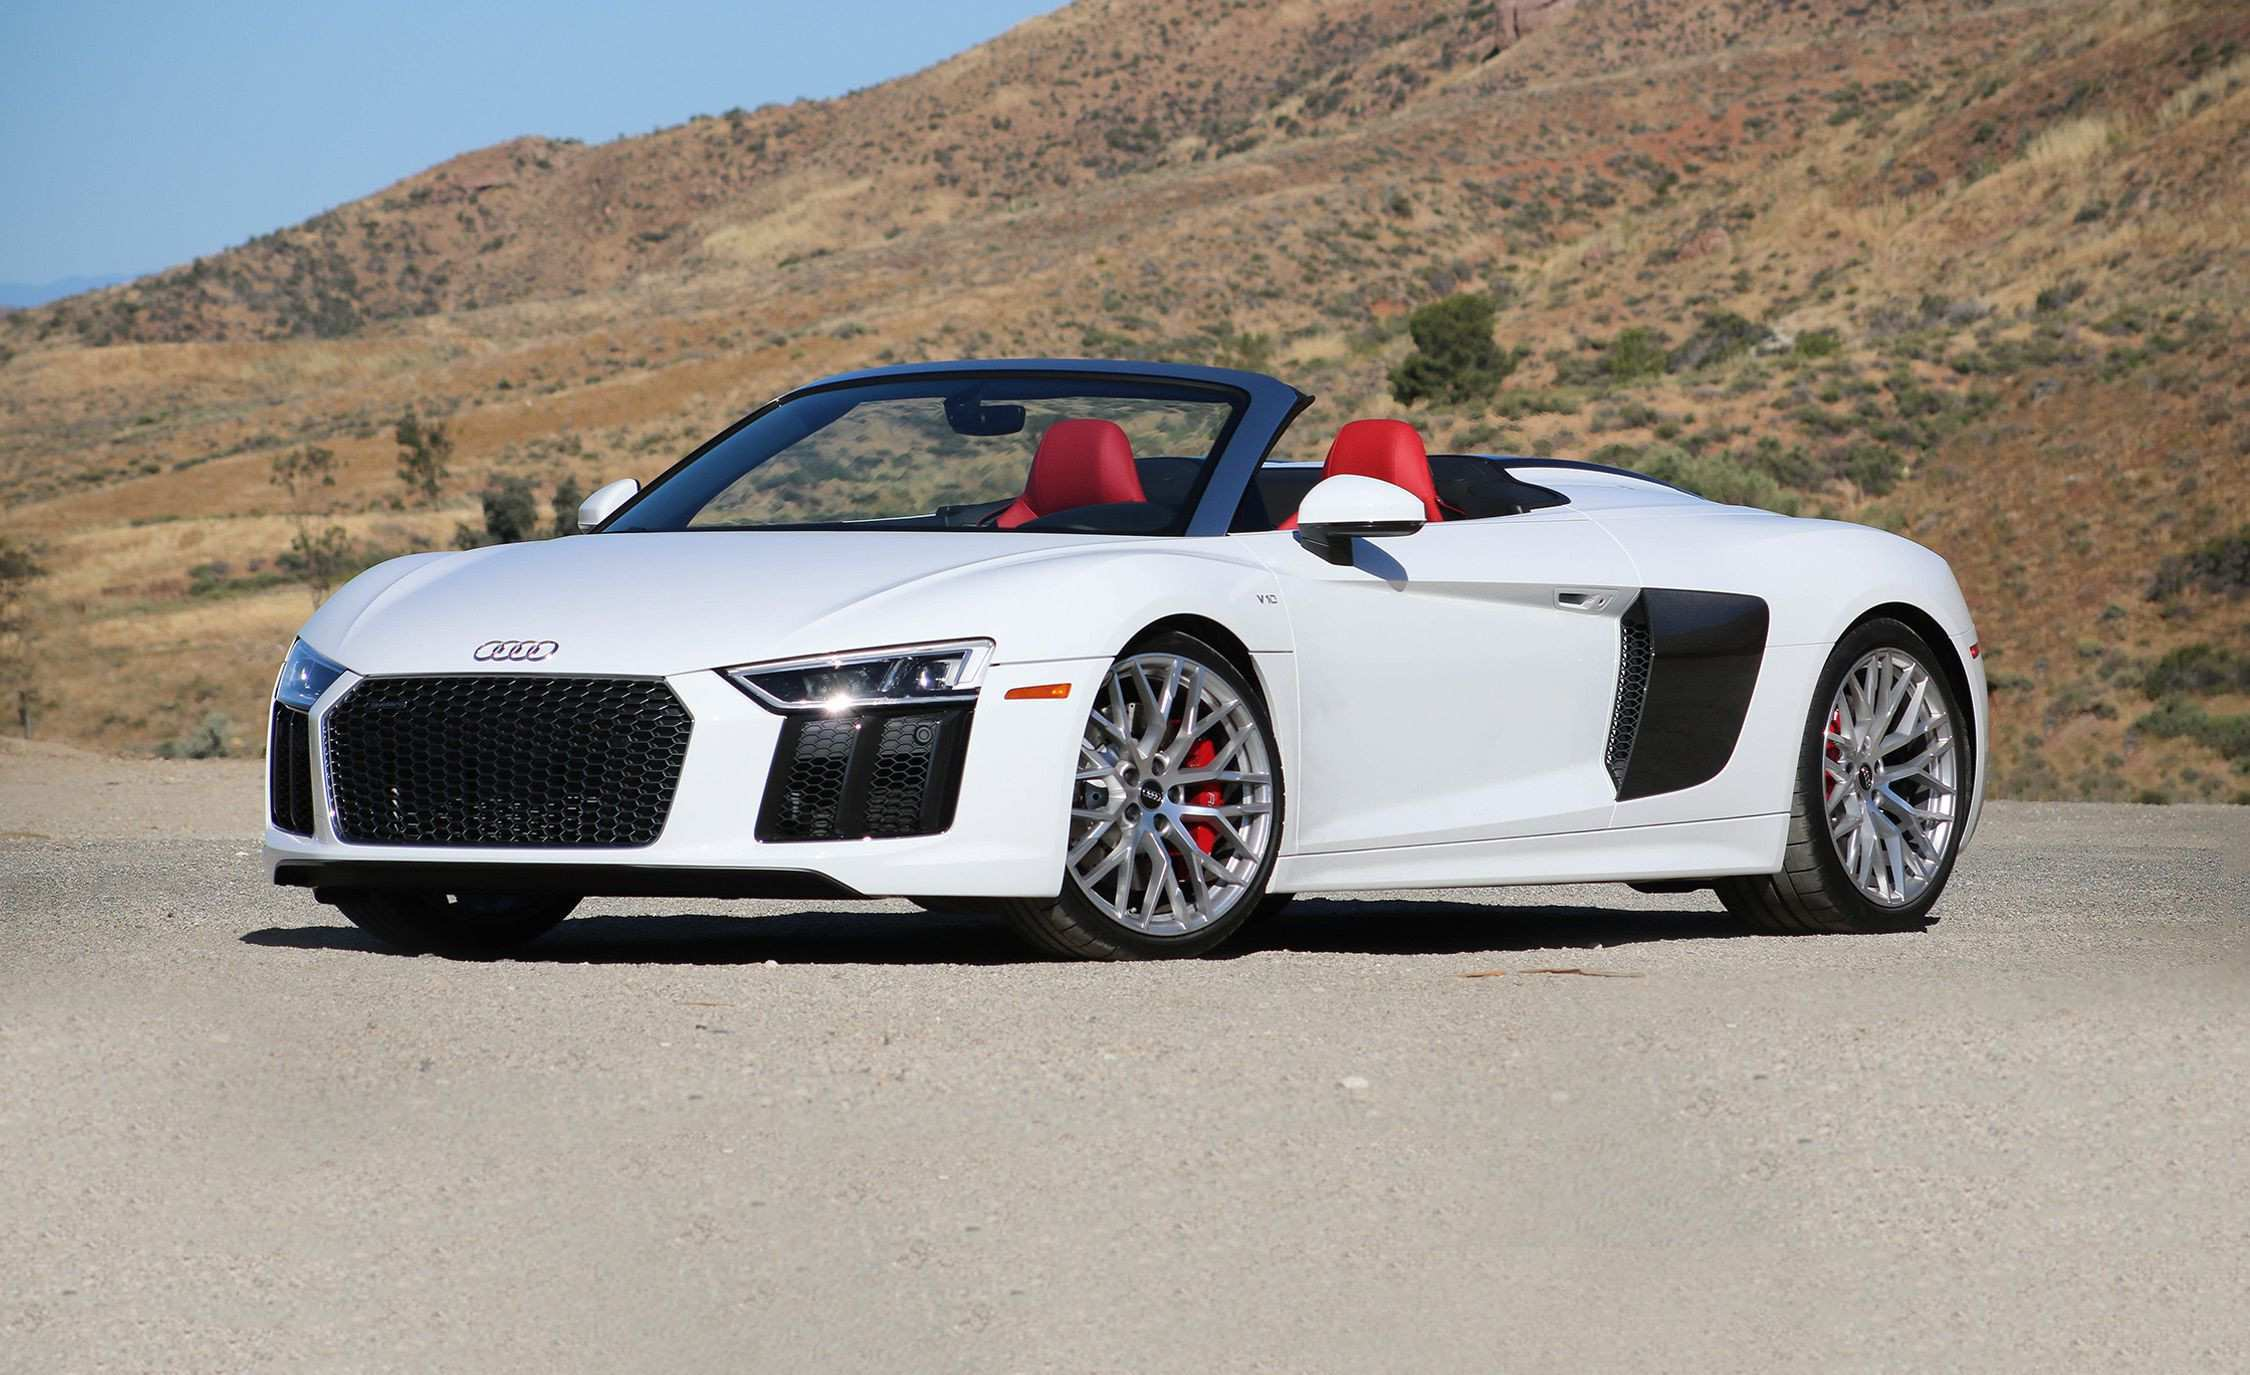 59 The 2019 Audi R8 LMXs Overview